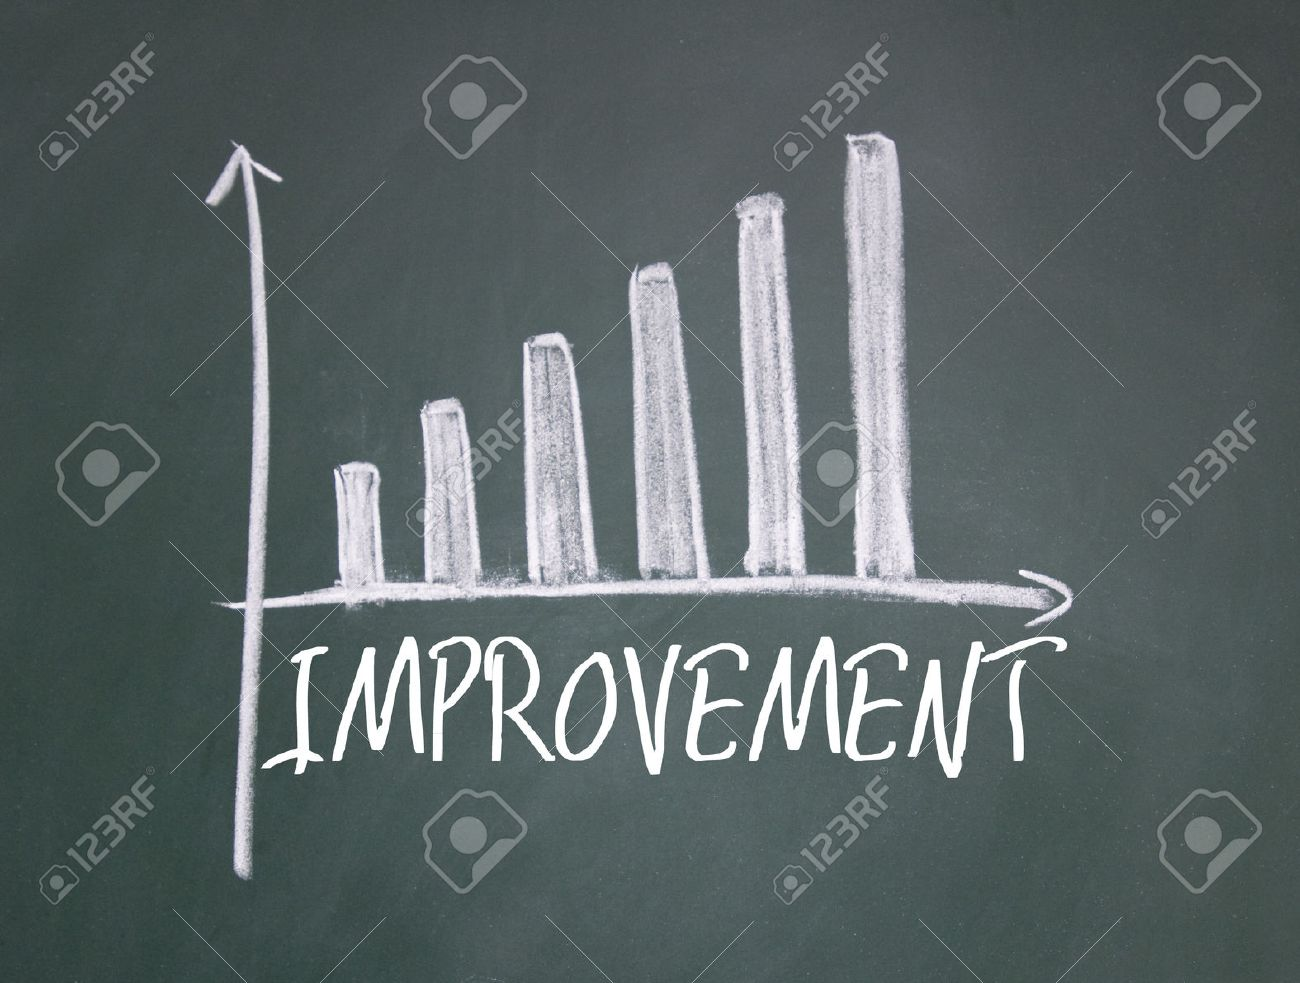 5 973 process improvement stock vector illustration and royalty free